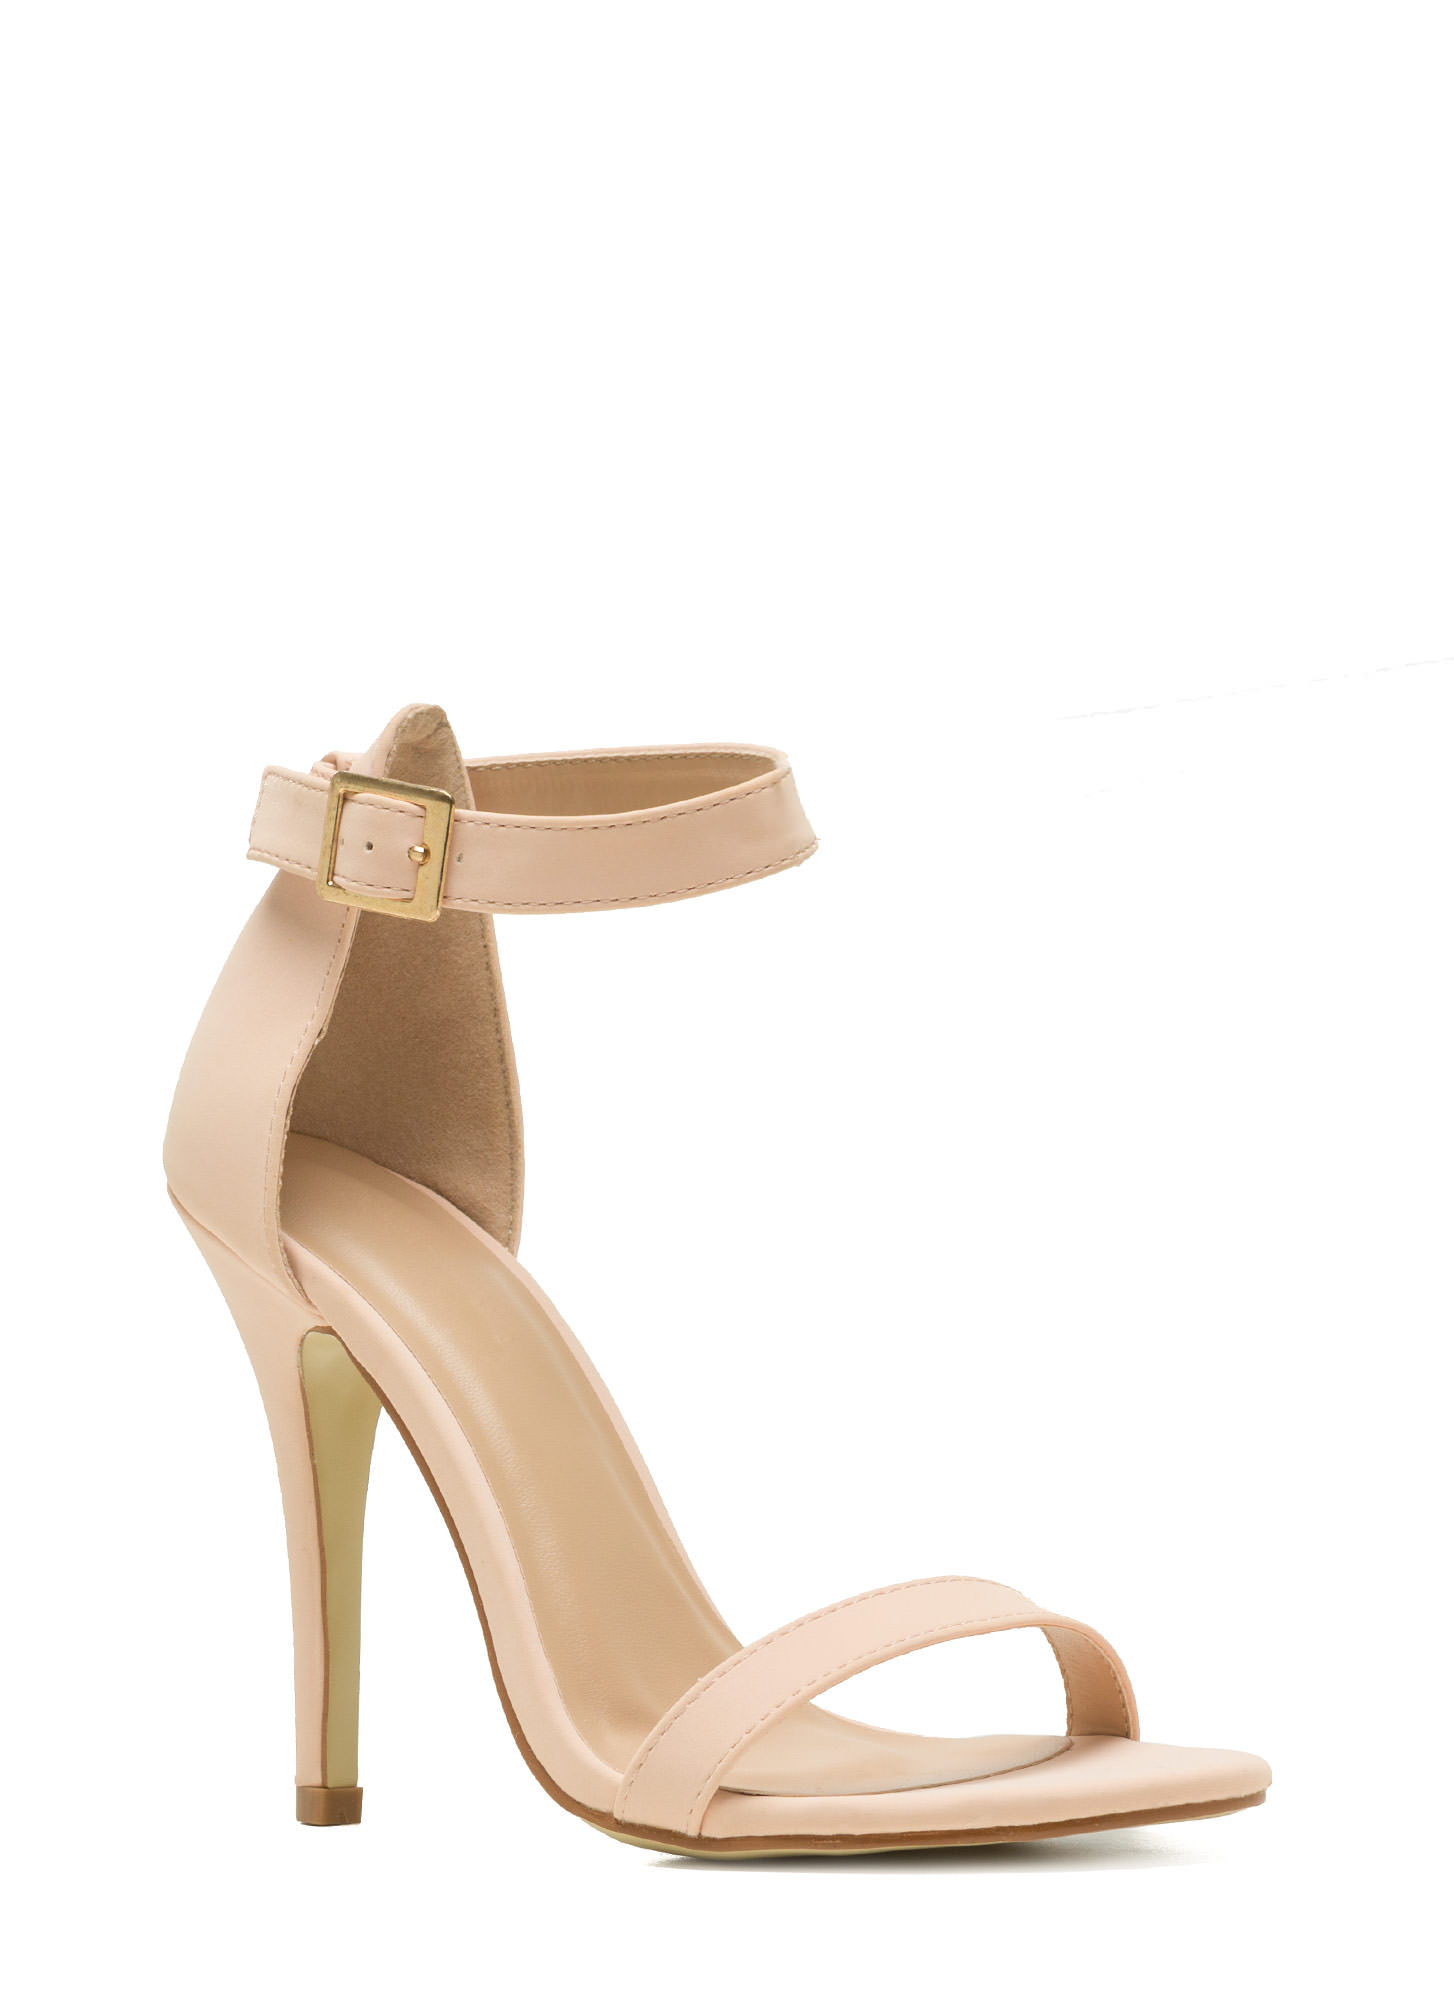 Less Is More Single-Strap Heels BLUSH